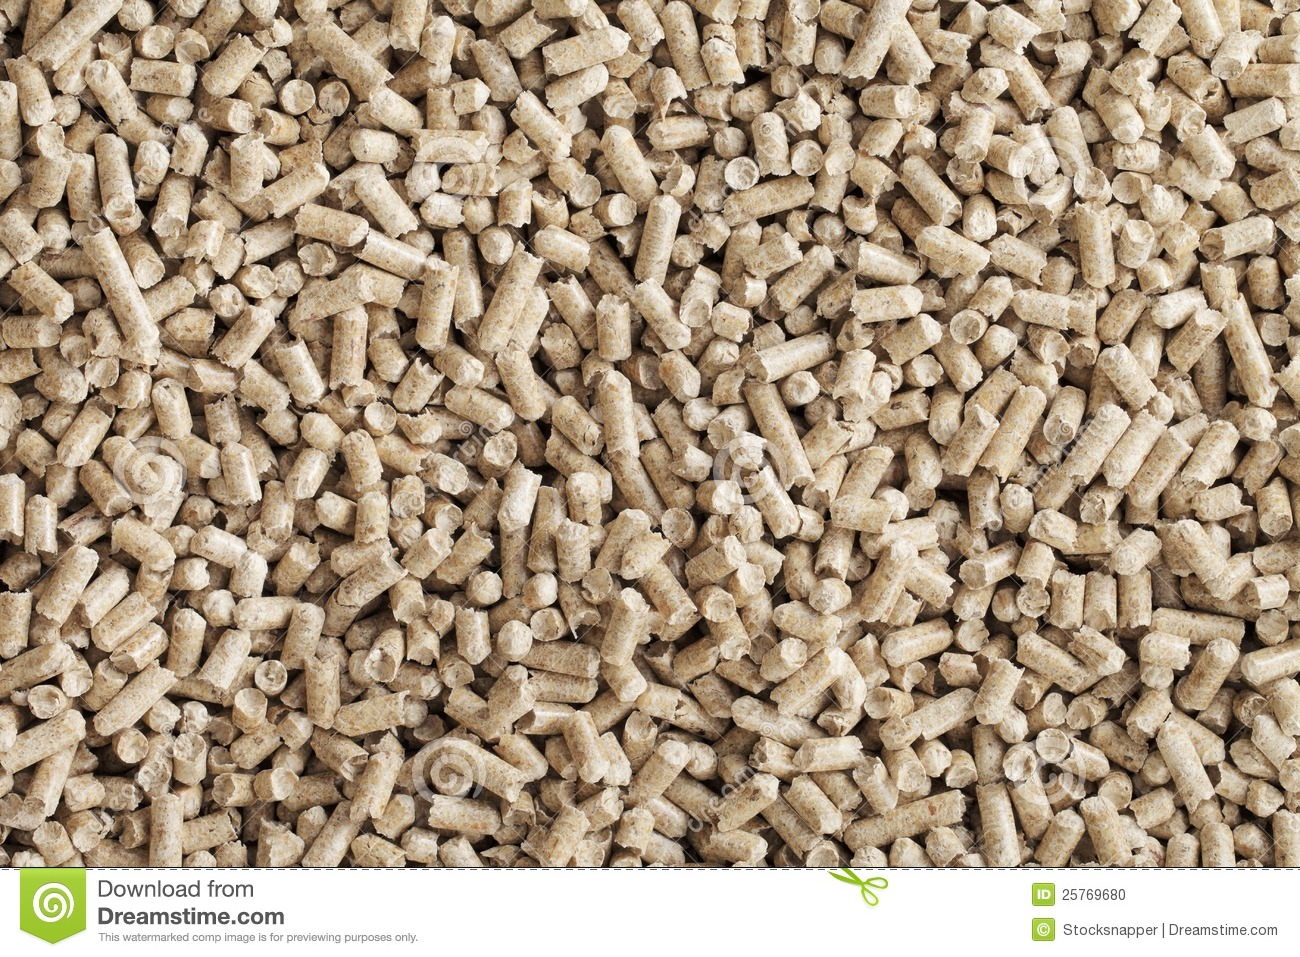 Wood Pellets stock photo. Image of biomass, pellet ...